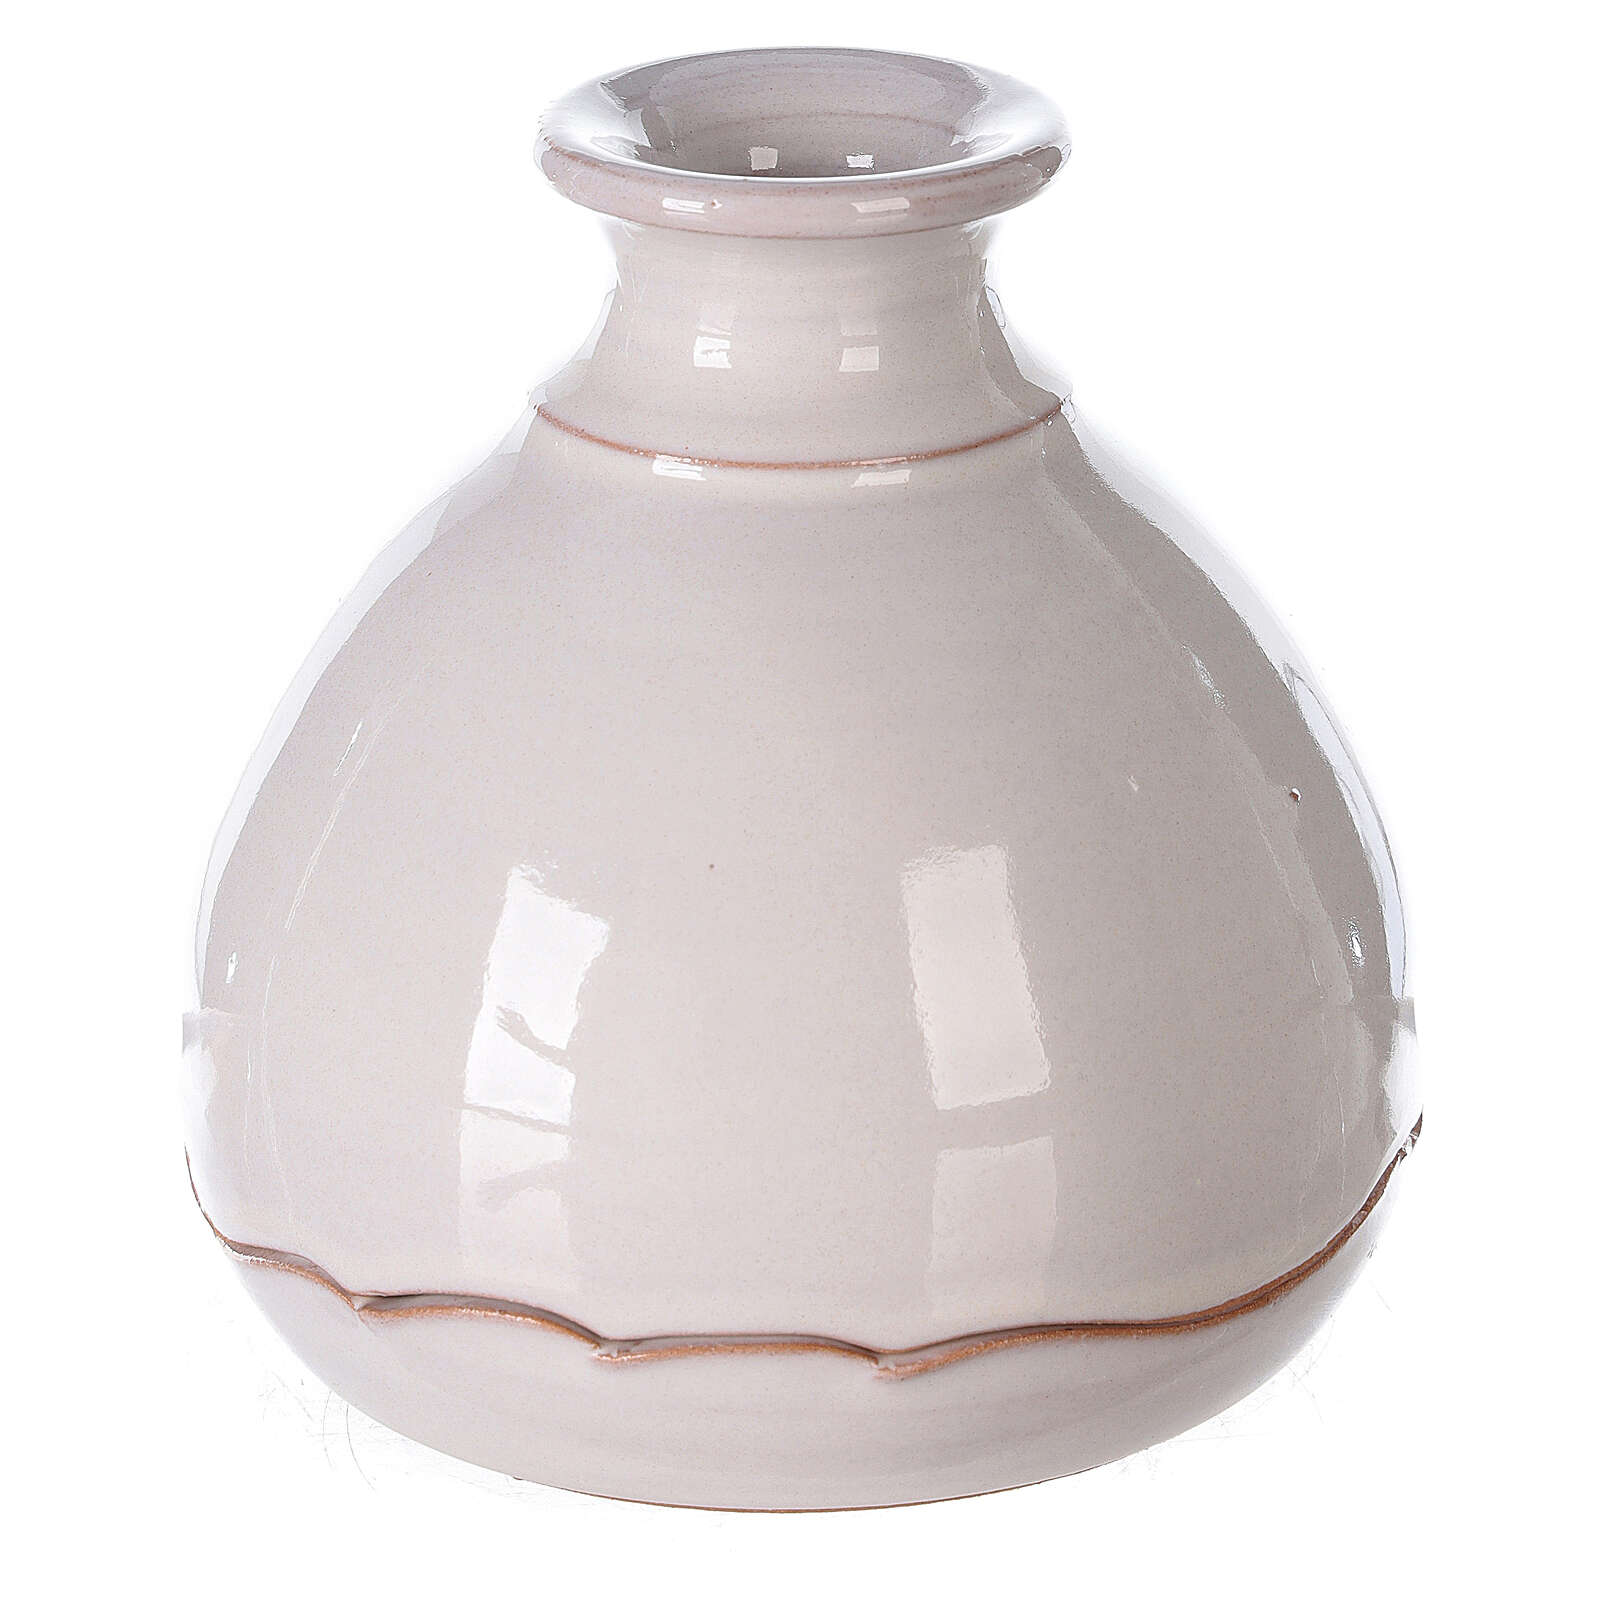 Openable vase in white Deruta terracotta 10 cm 4